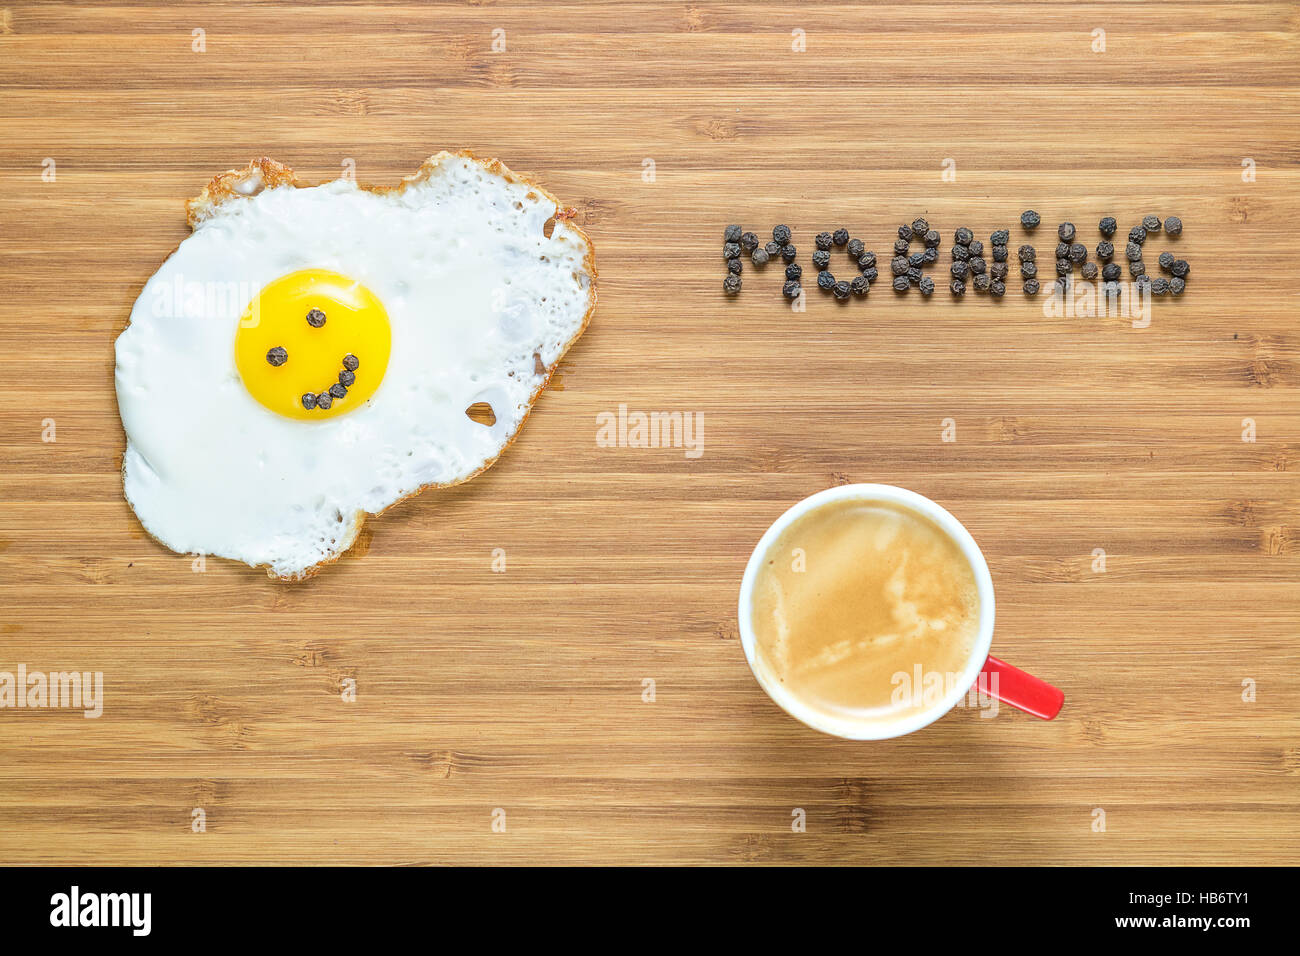 Smiling fried egg lying on a white plate and wooden cutting board with silver fork near it. Classic Breakfast concept. - Stock Image